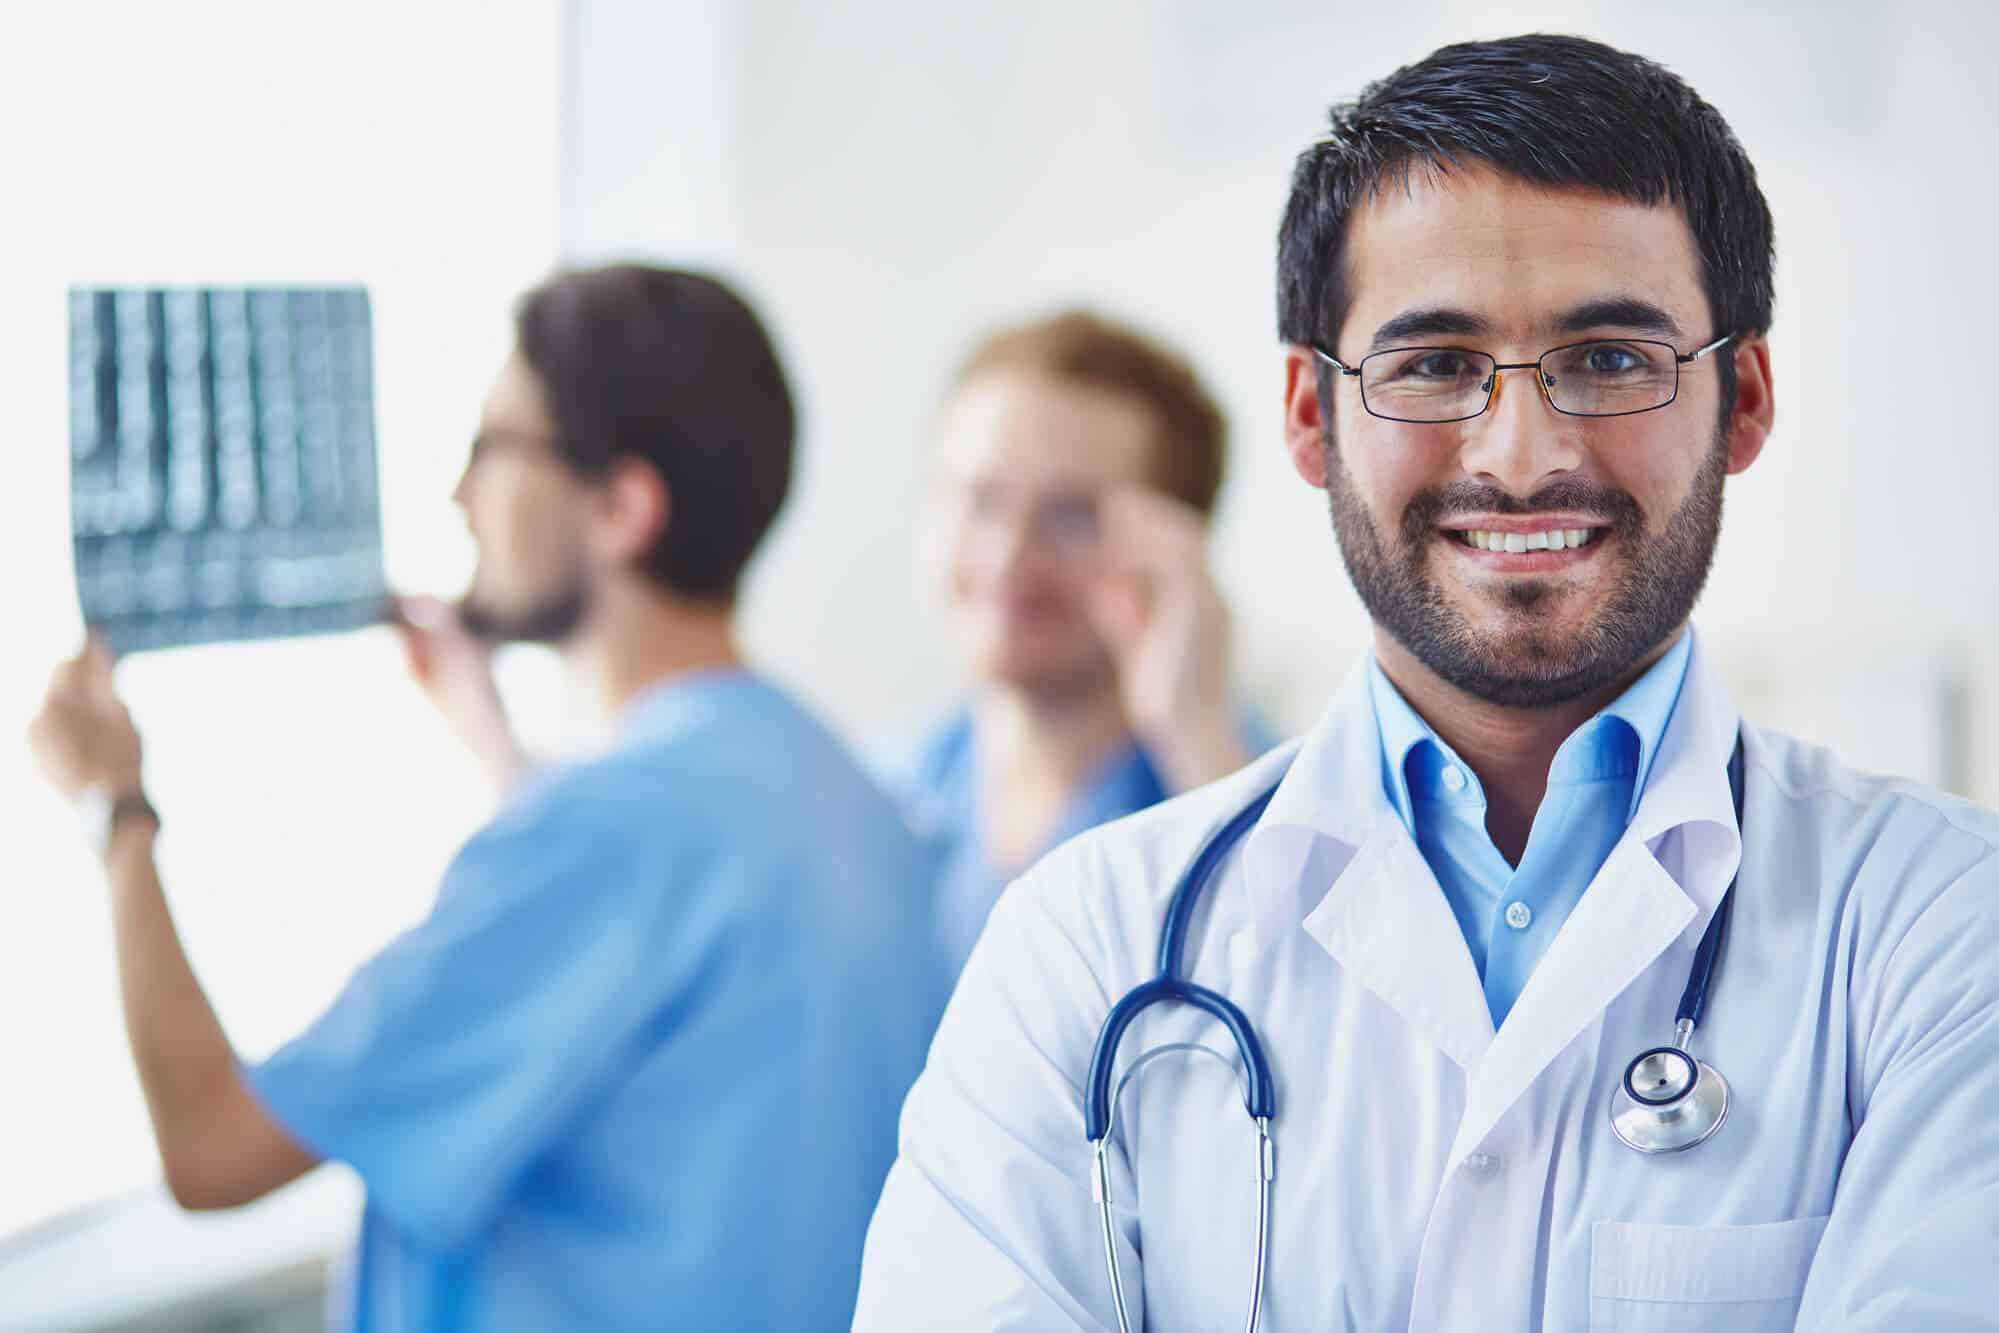 How to Become a Radiologist in 4 Steps | Requirements, Costs